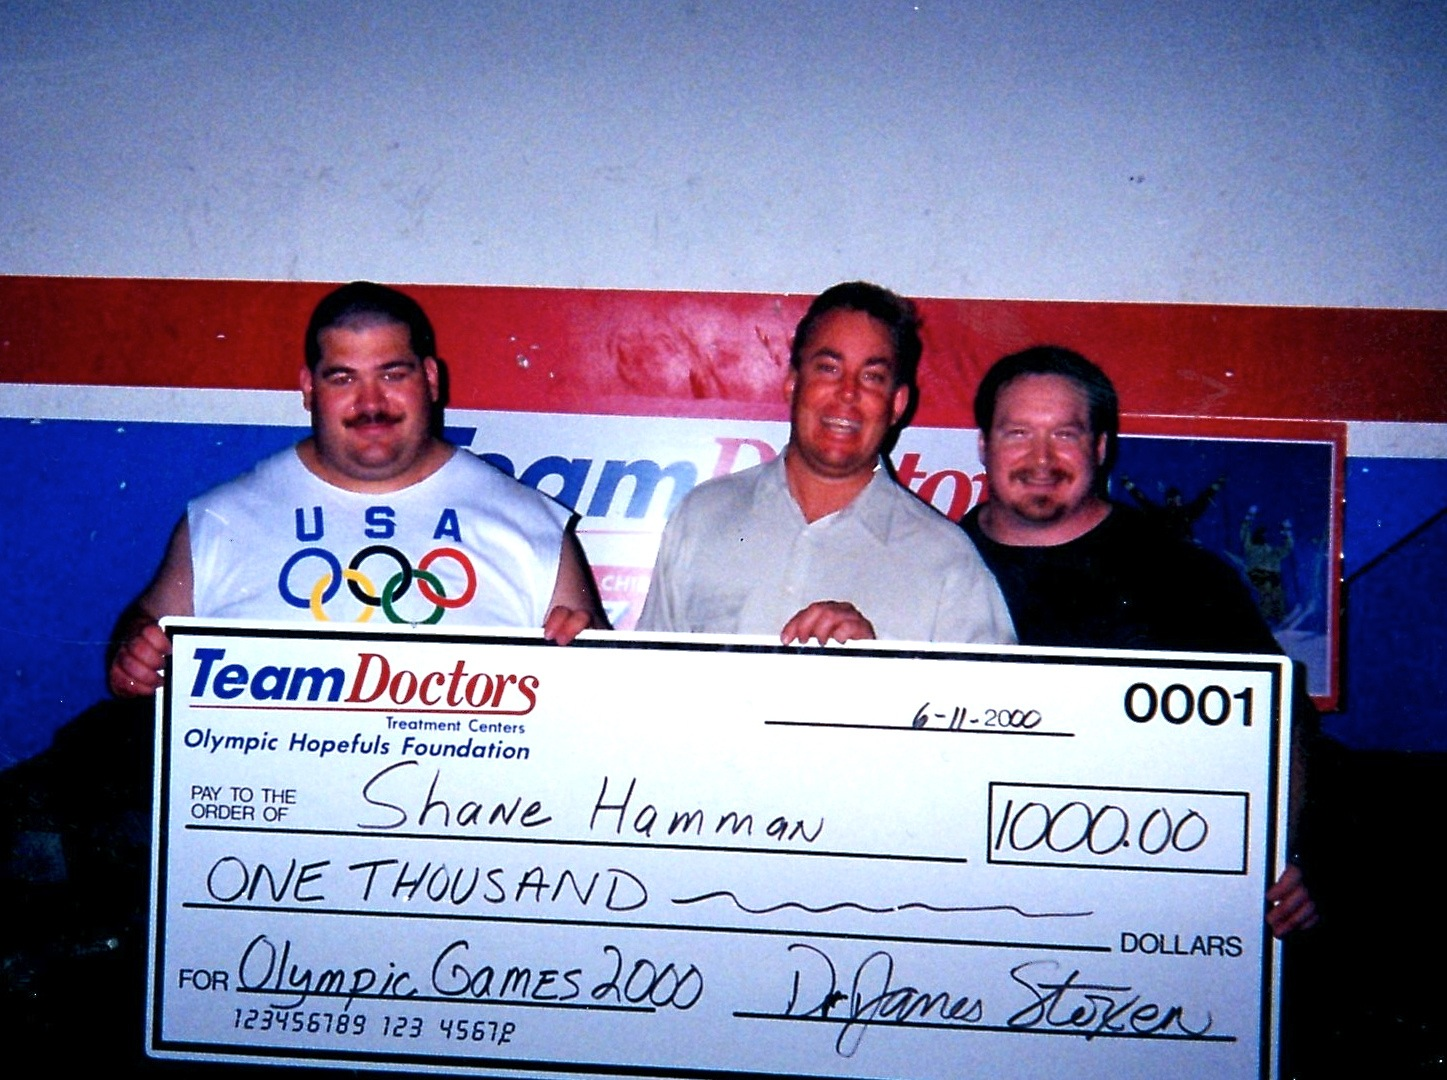 Shane Hamman Dr James Stoxen Dc And Ed Coan